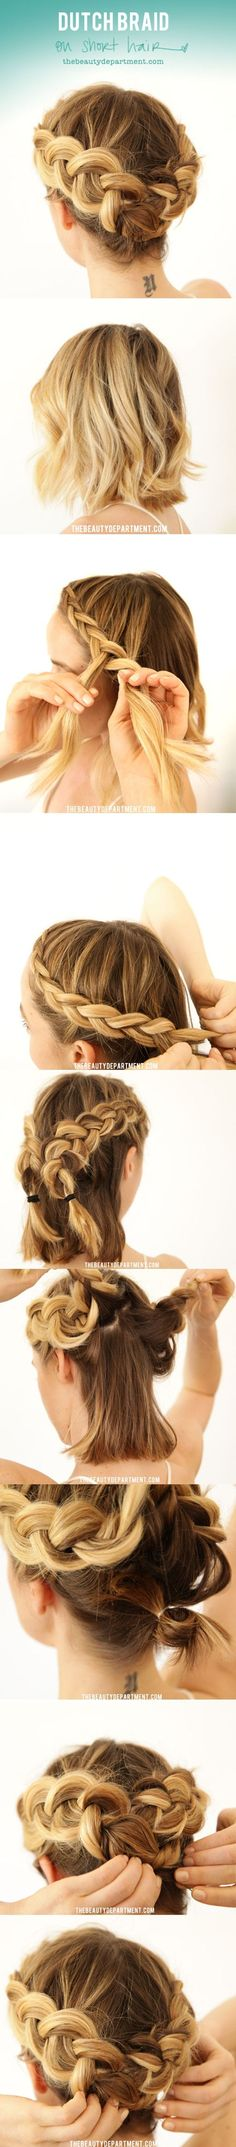 Dutch Braid Tutorial ..................................... #hairideas #hairstyles #haircuts #hairlavie #hairinspo #hairinspiration #hair #hairlavie #hairtutorial #braidtutorial #dutchbraid